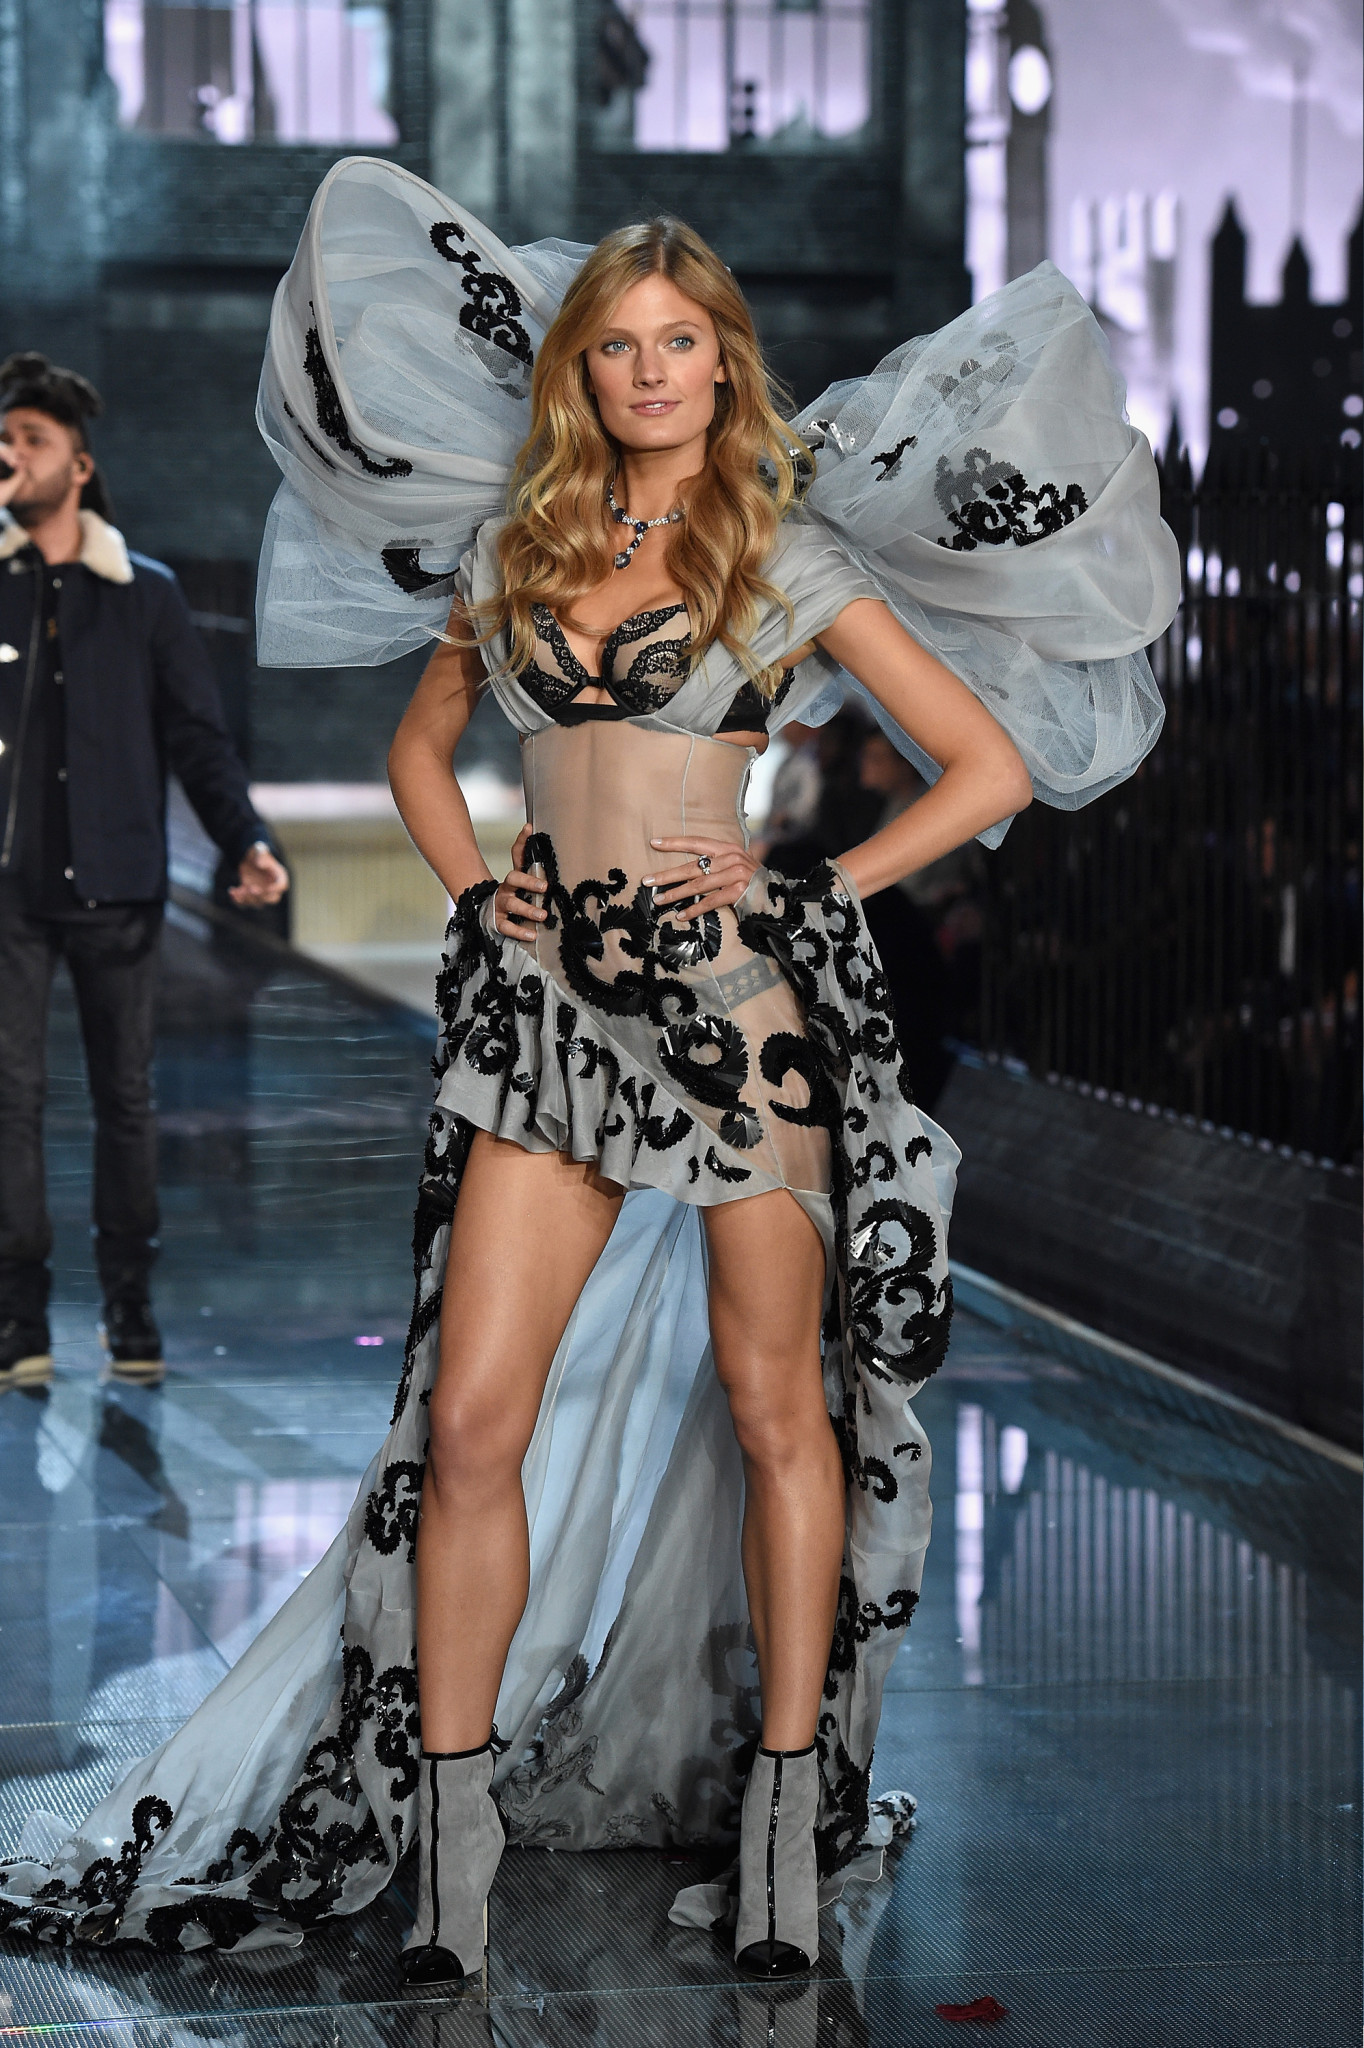 NEW YORK, NY - NOVEMBER 10: Model Constance Jablonski from France walks the runway during the 2015 Victoria's Secret Fashion Show at Lexington Avenue Armory on November 10, 2015 in New York City.